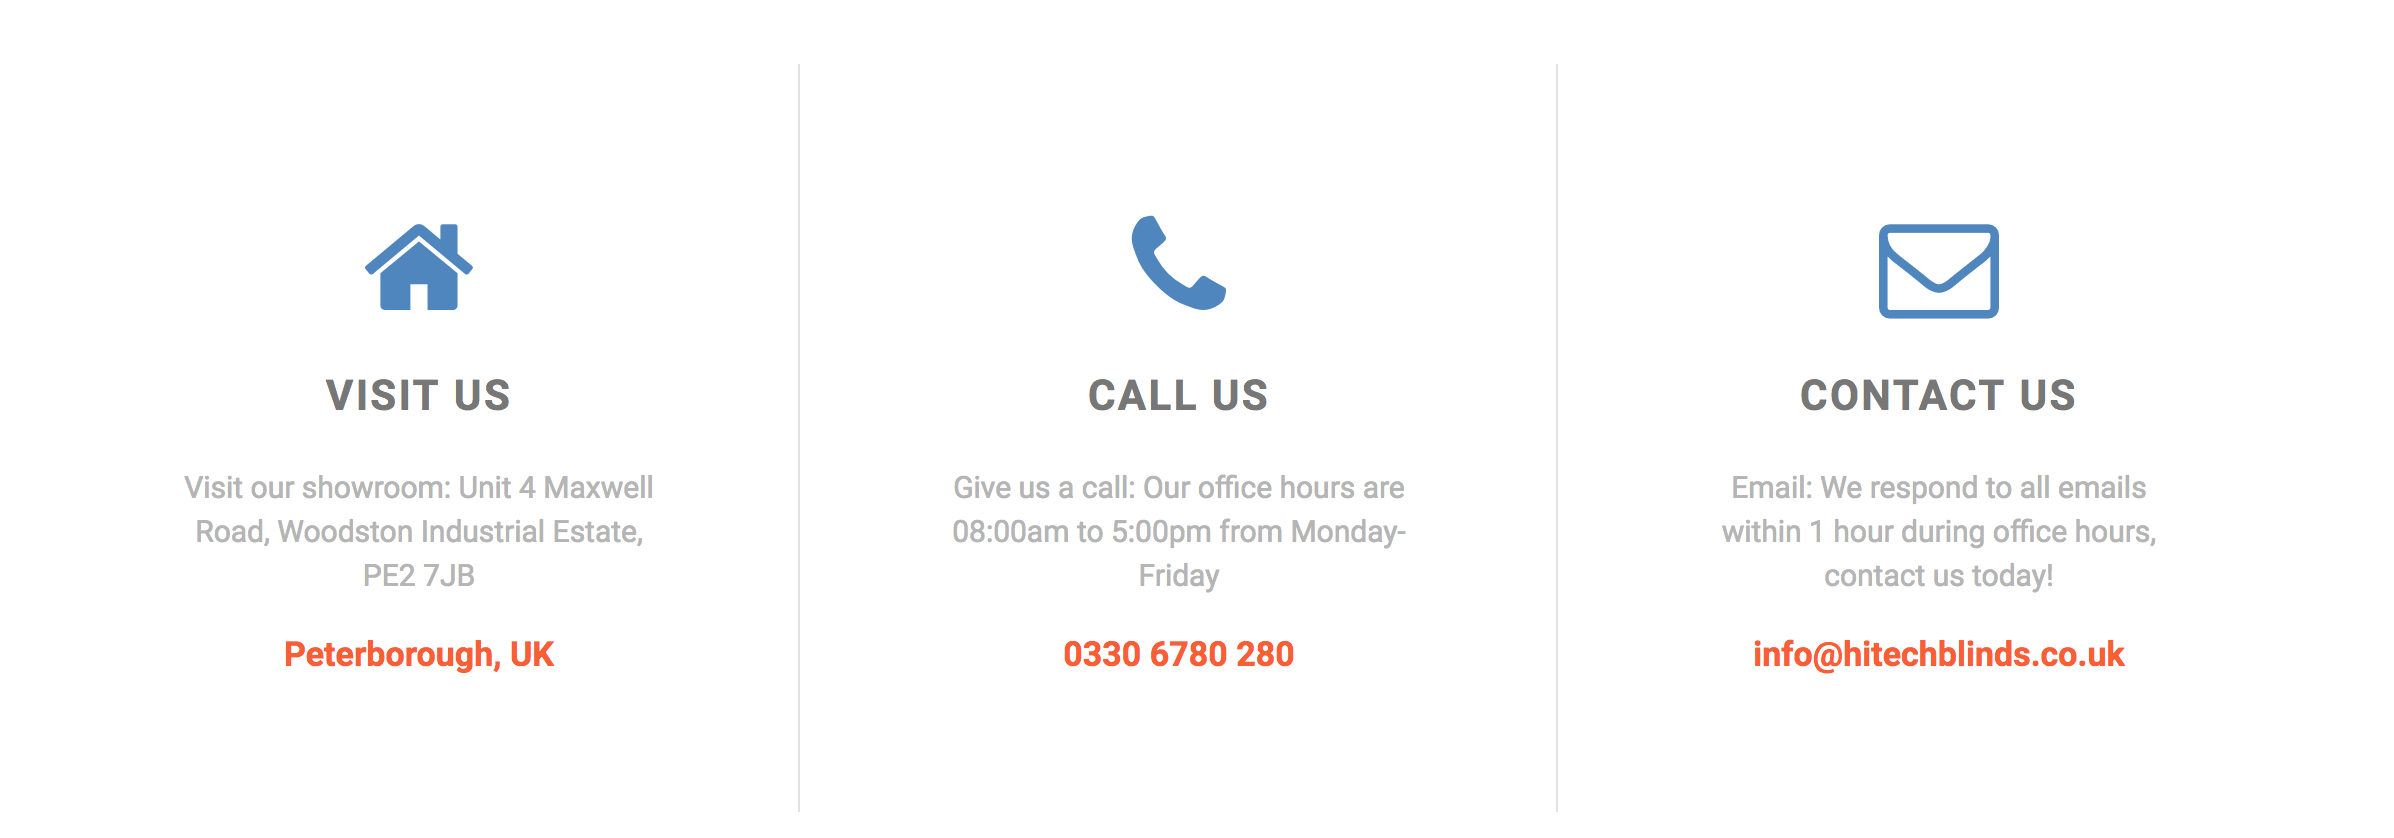 Contact details for HiTech Blinds